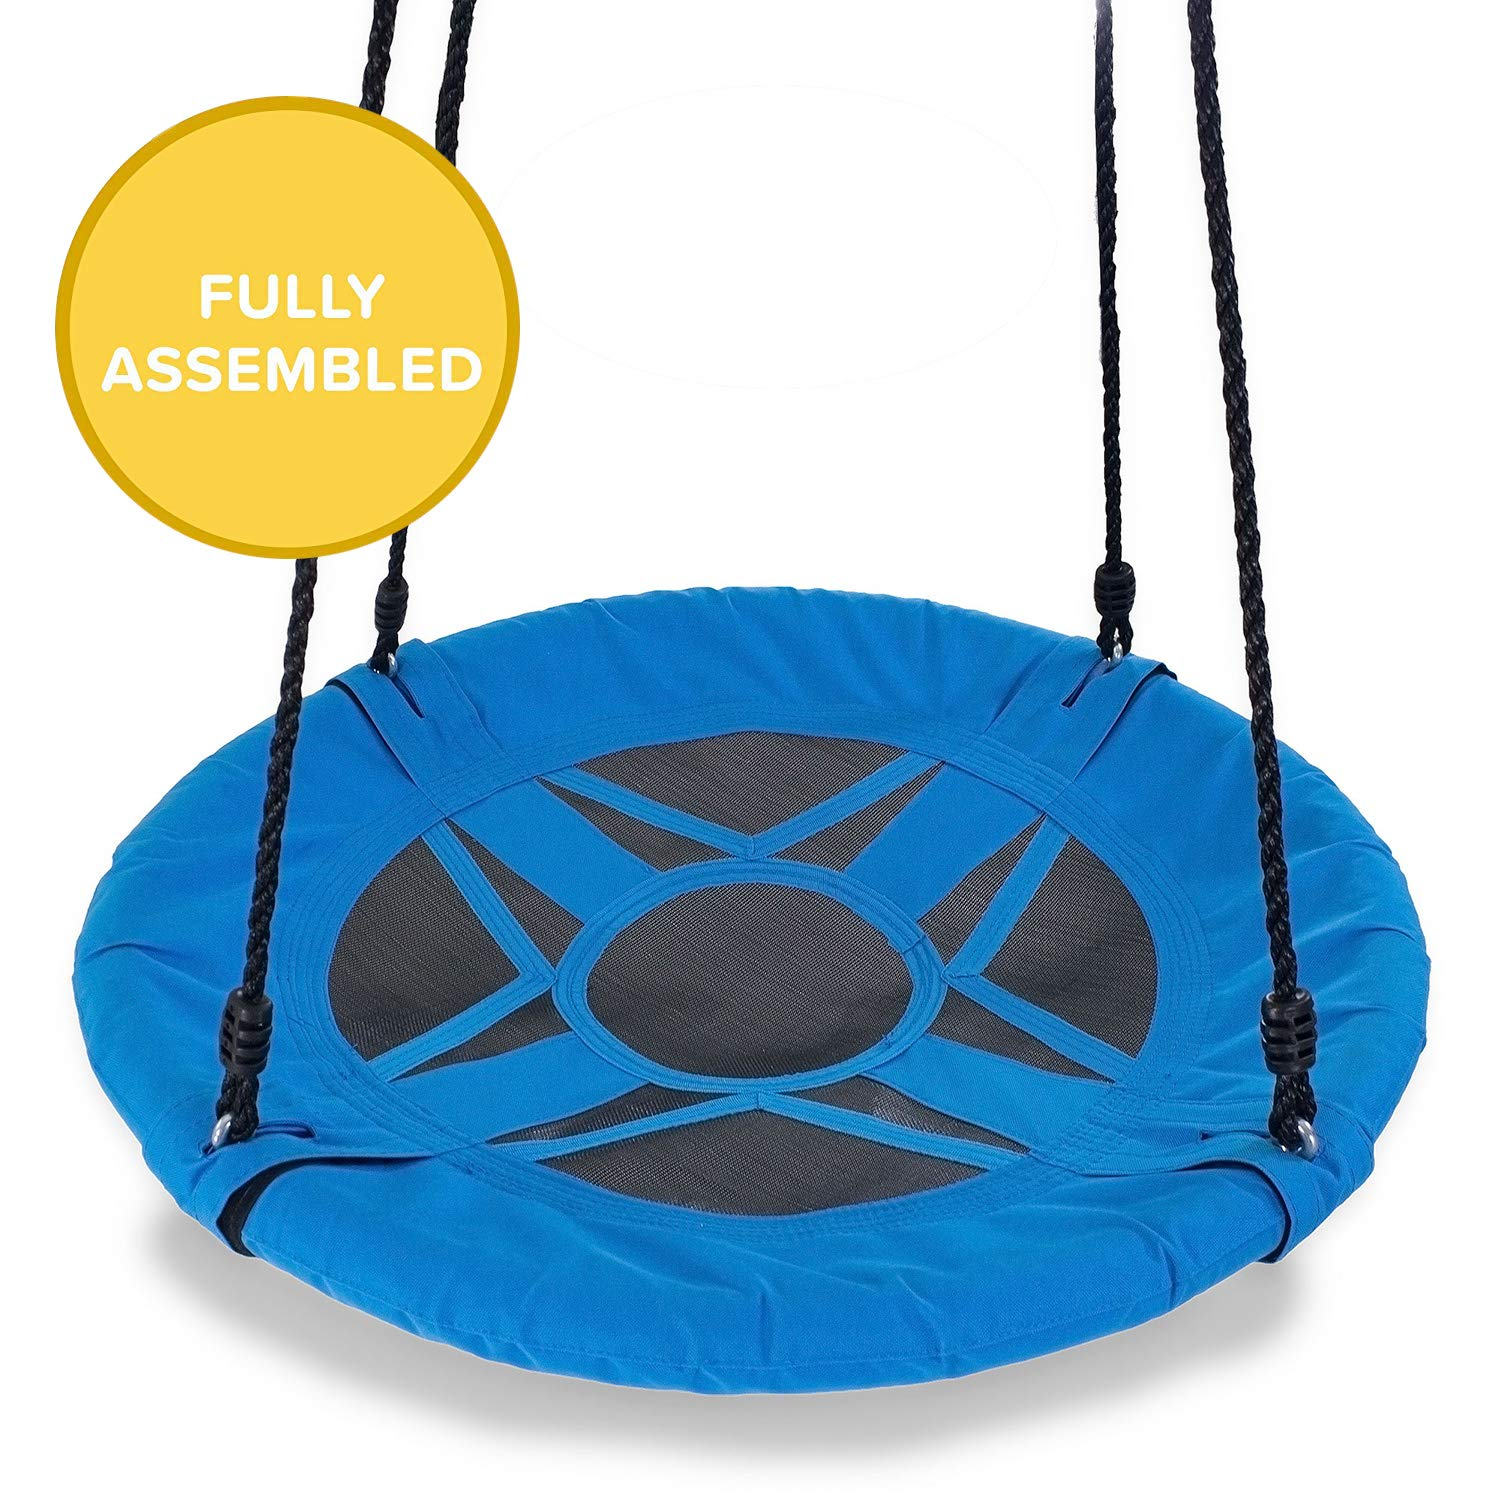 Play Platoon Flying Saucer Tree Swing - 400 lb Weight Capacity, Fully Assembled, Easy to Install Easy Setup